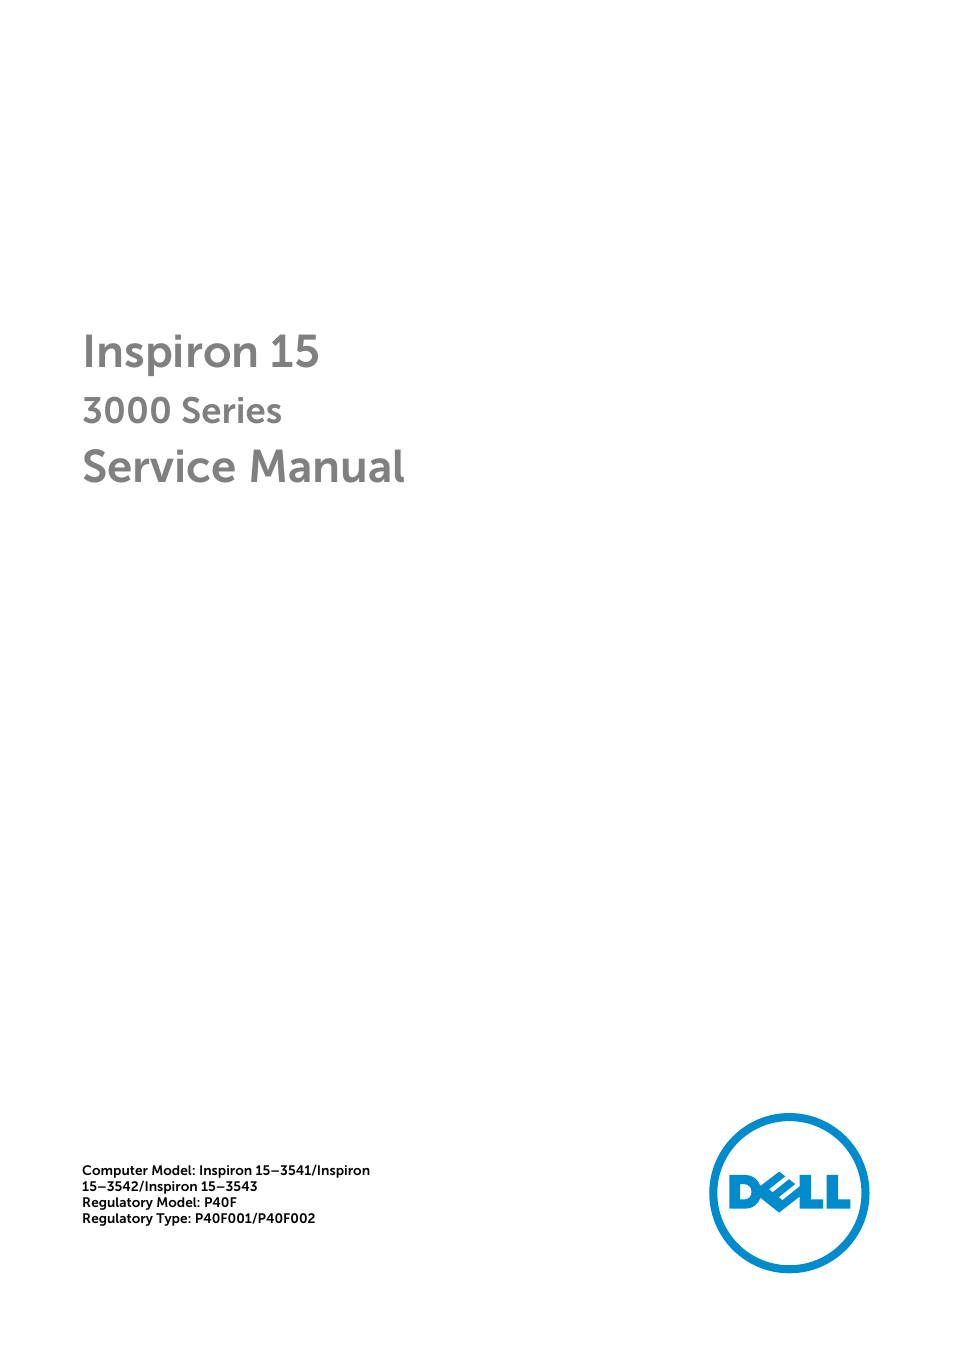 Dell Inspiron 15 (3543, Early 2015) User Manual | 99 pages